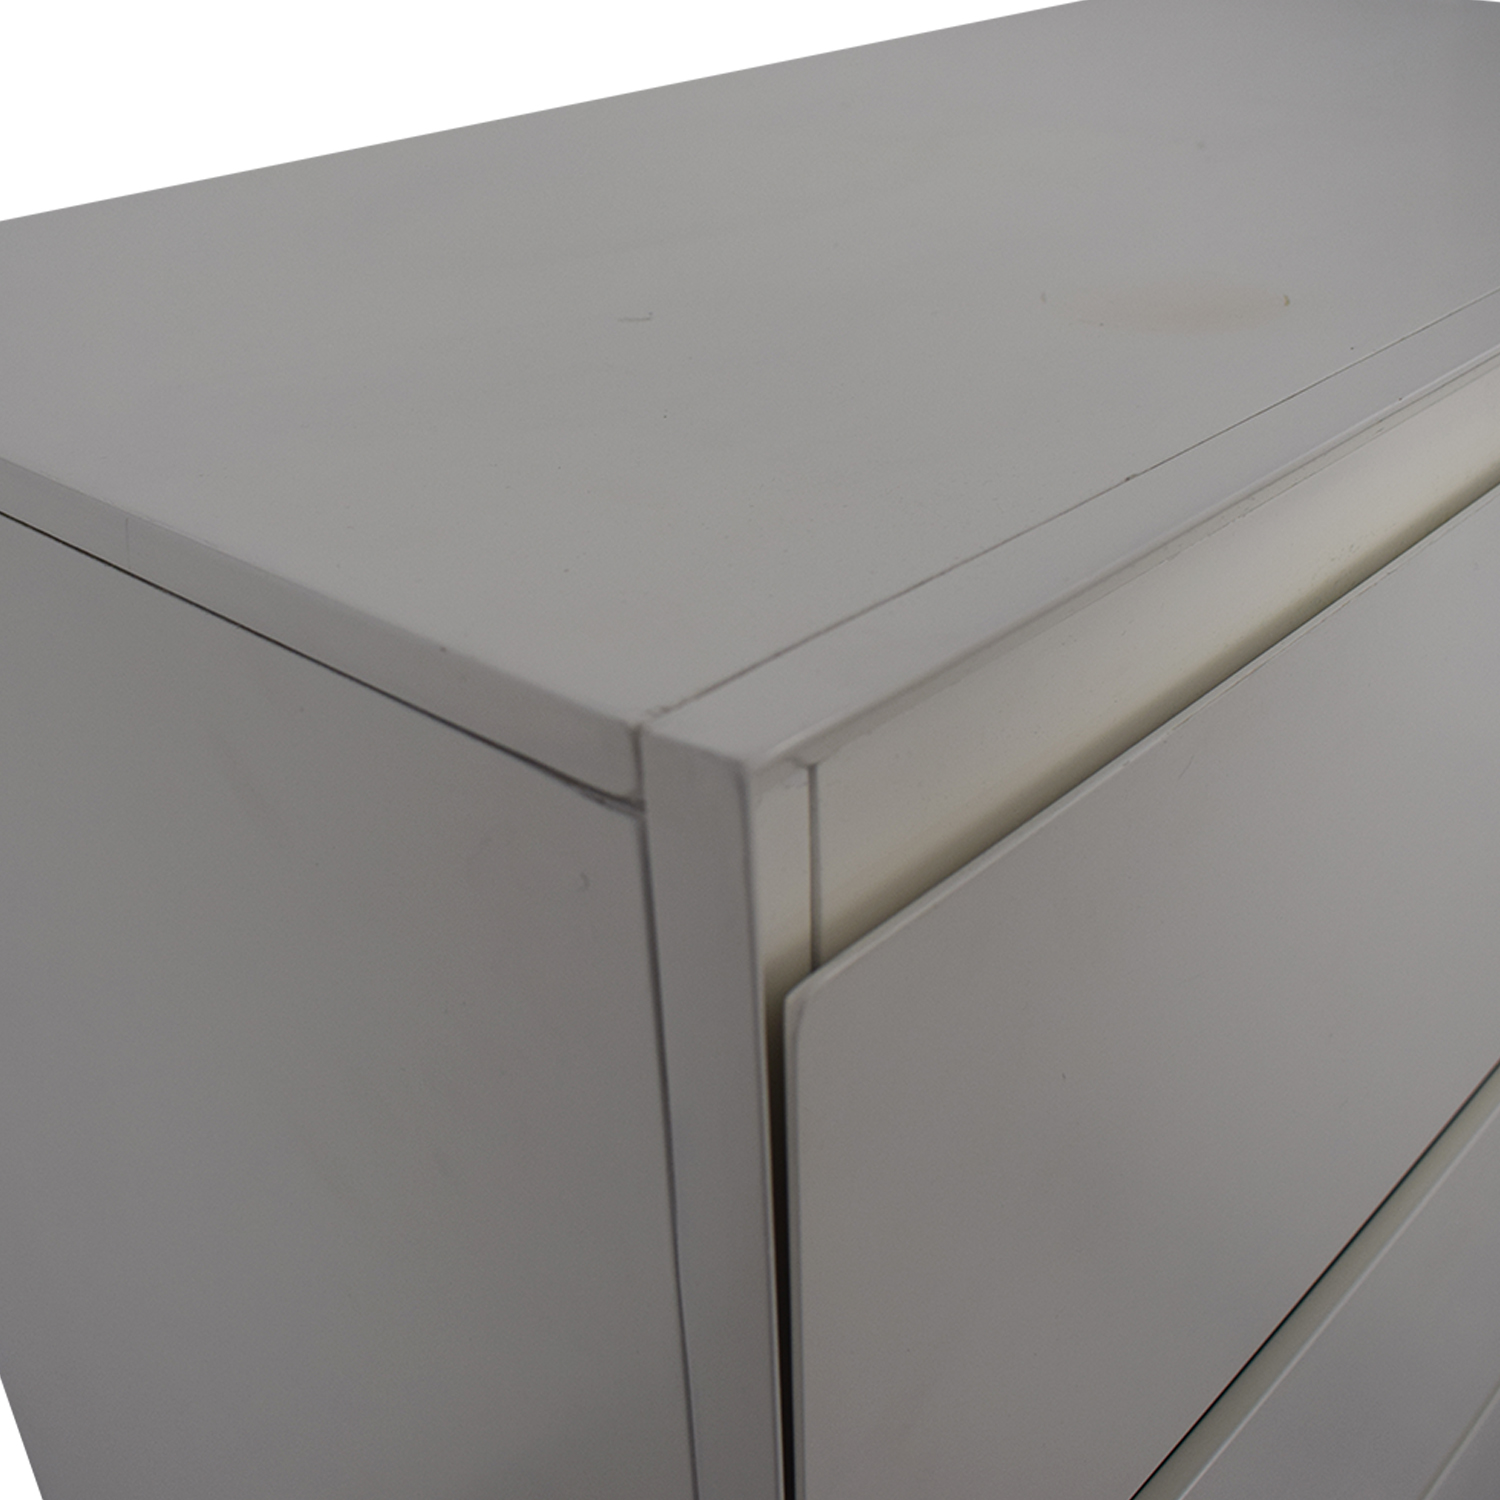 Furniture of America Leeroy Chest of Drawers / Dressers